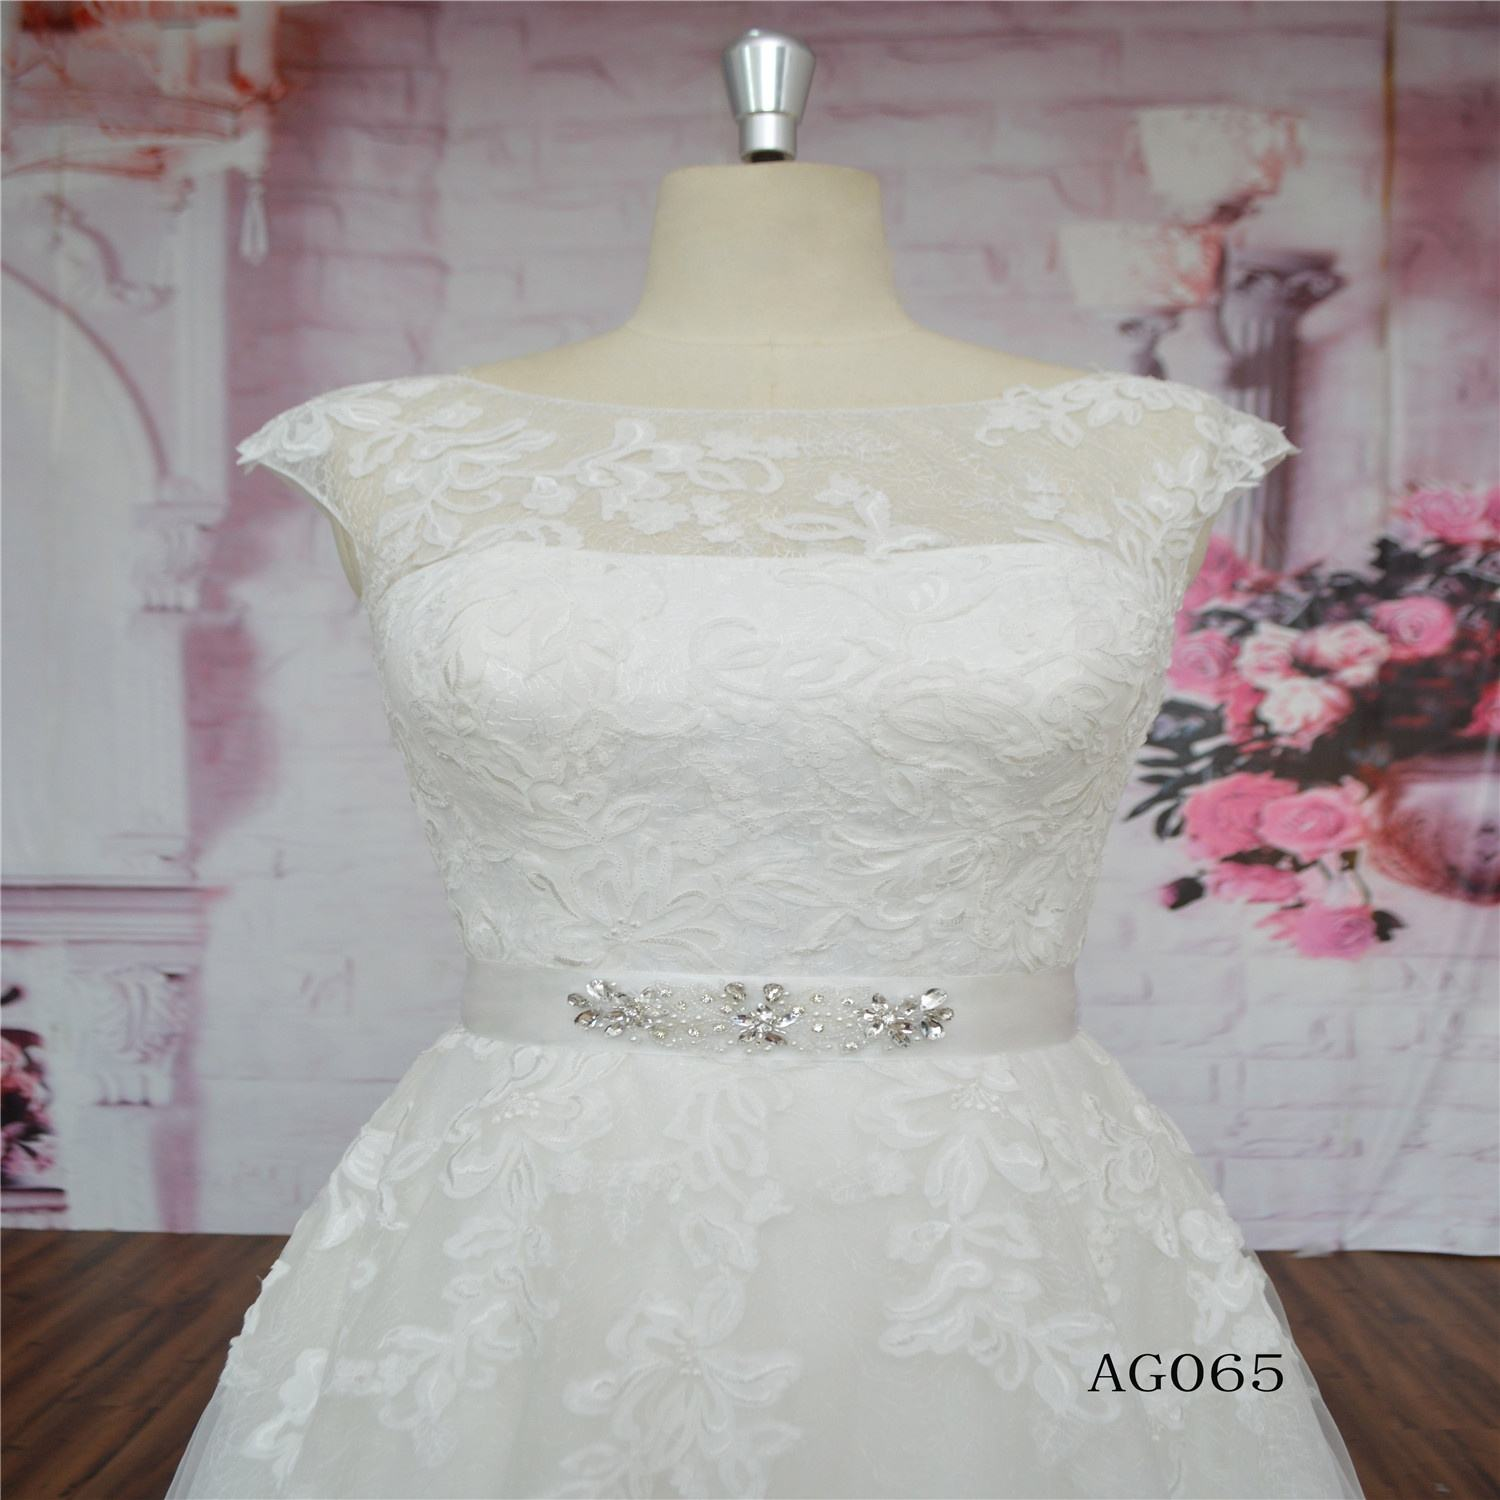 Lace A-Line wedding dress bridal dress beading on stock with belt